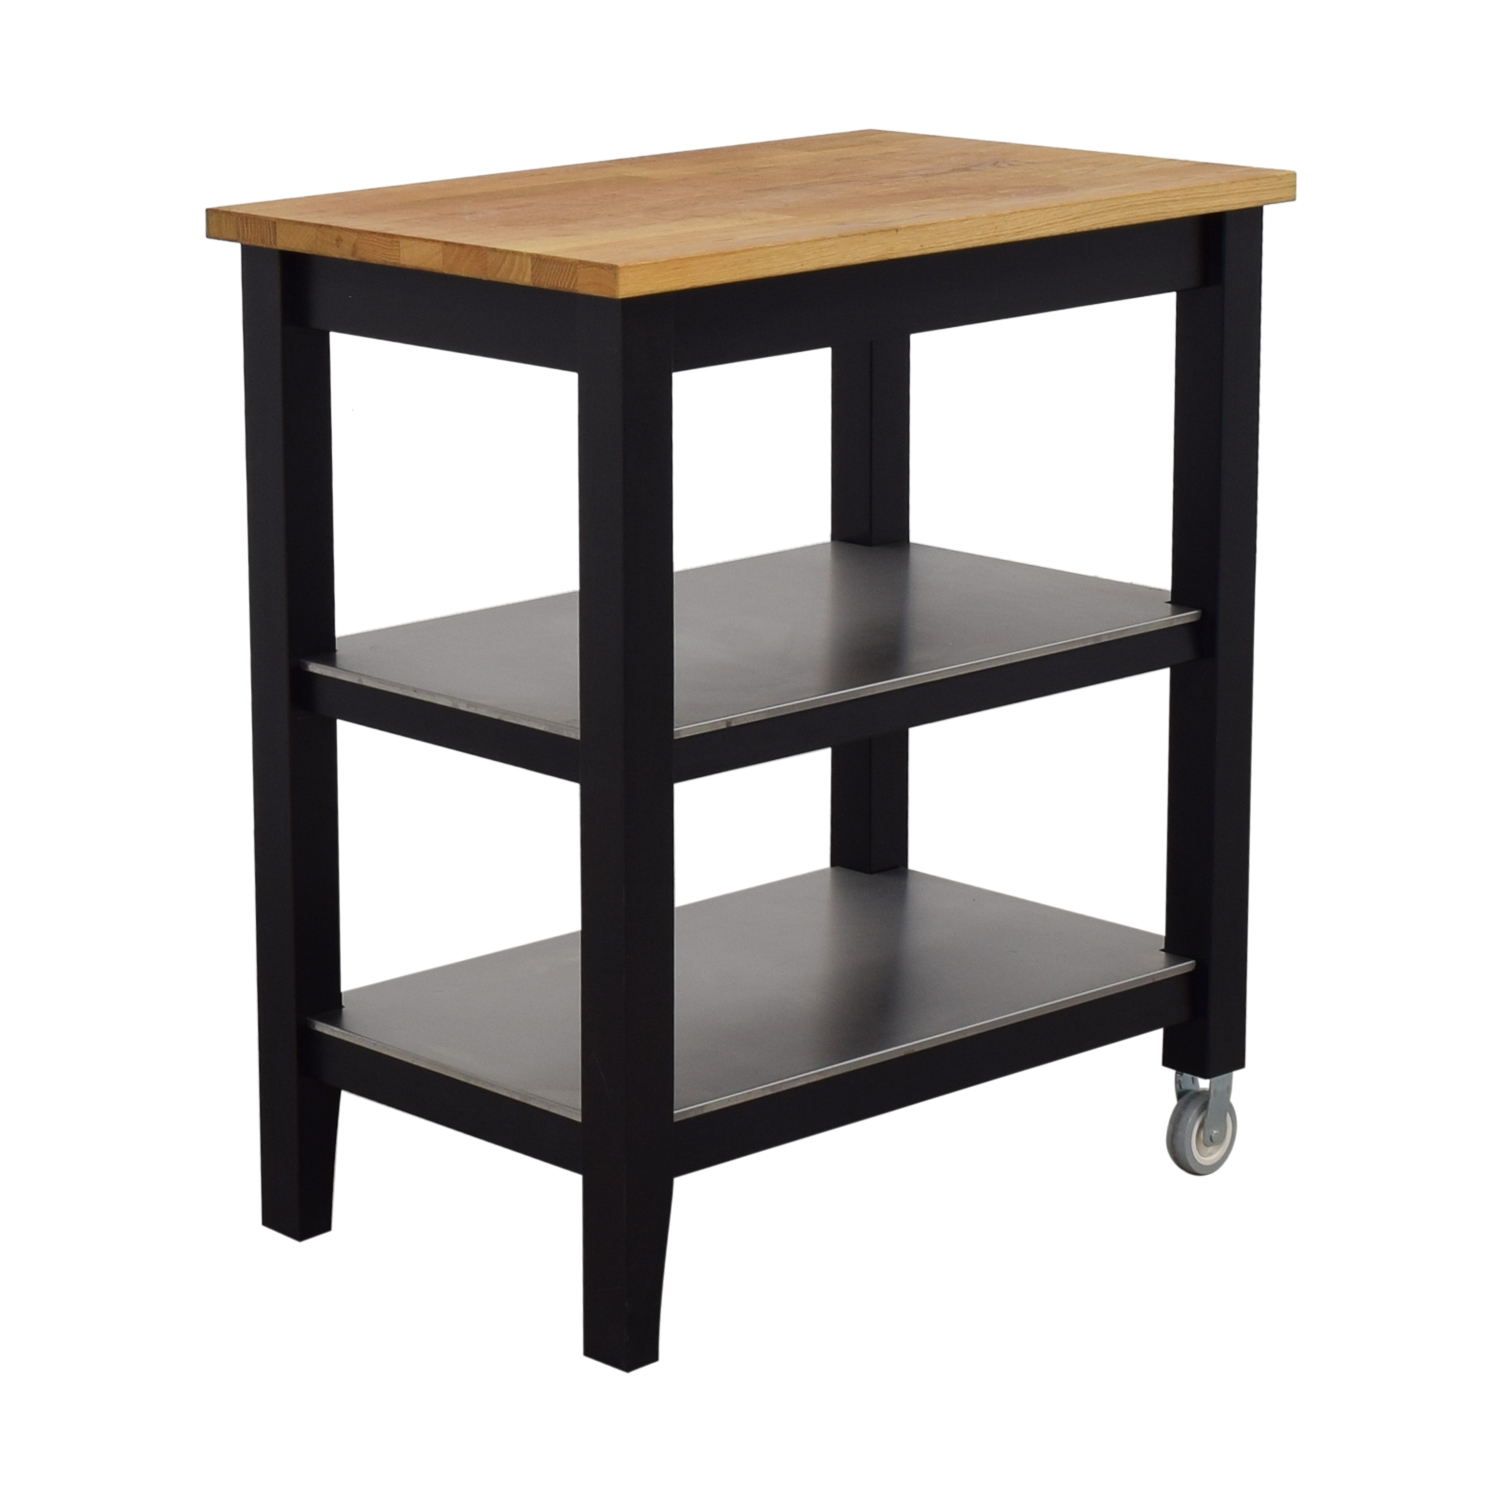 Ikea Stenstorp Wood And Black Kitchen Island Cart